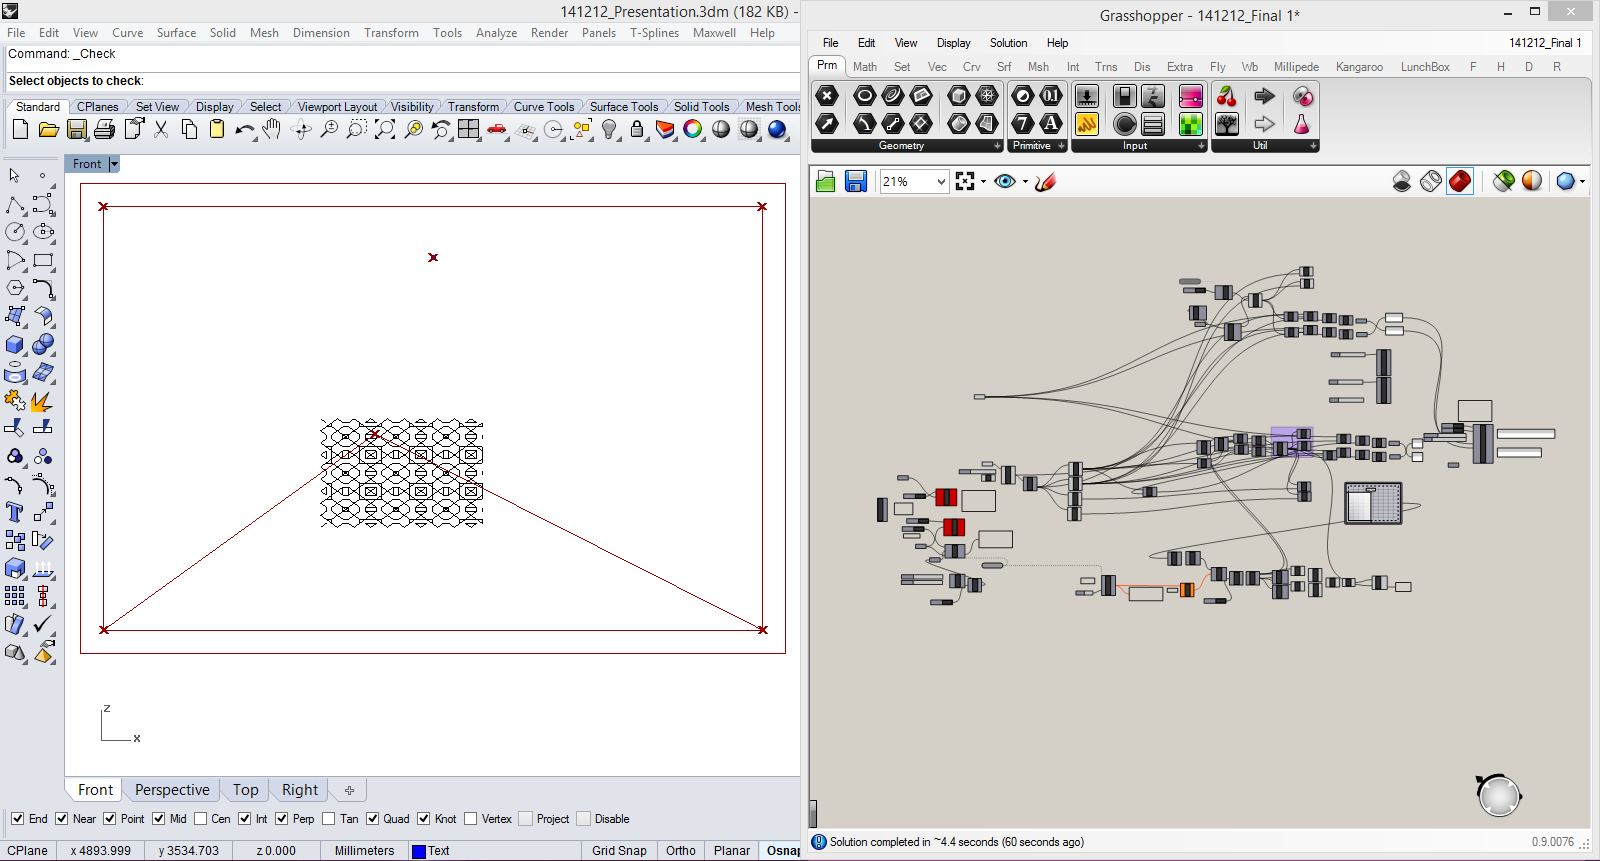 Nathan Melenbrink How To Make Almost Anything 5 Wire Regulator Wiring Diagram For Rhino This Screen Shot Shows The Input Pattern In Workspace And Grasshopper Definition Parsing Those Curves Turning Them Into Stepper Motor